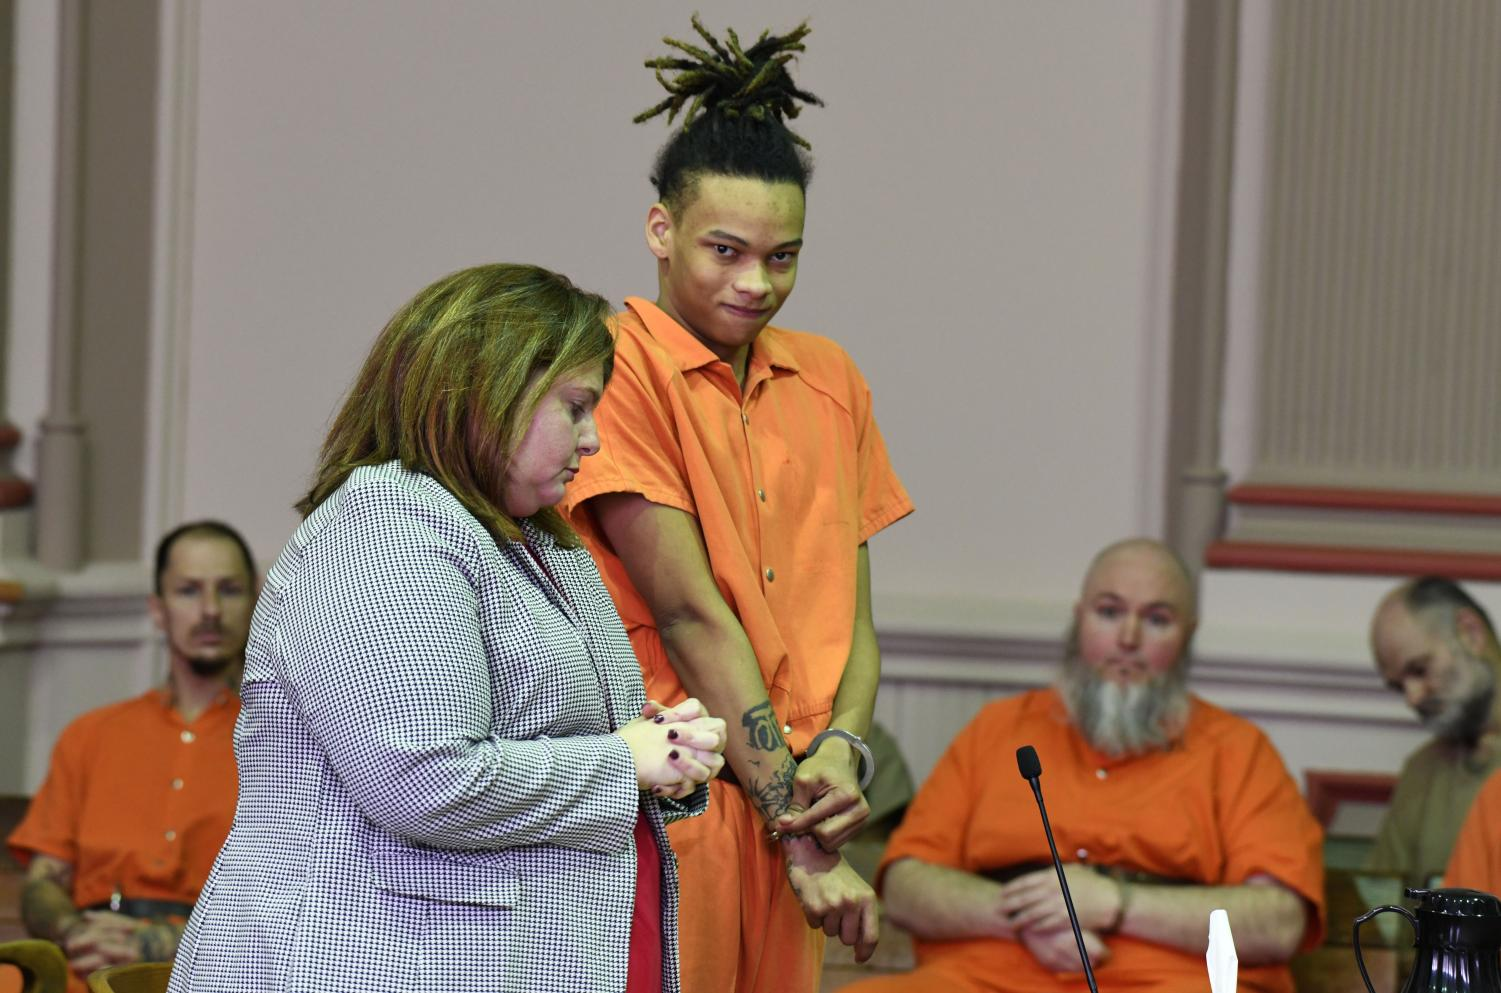 Jamal Mayle readjusts his handcuffs in court before being sentenced to 10 years in prison.